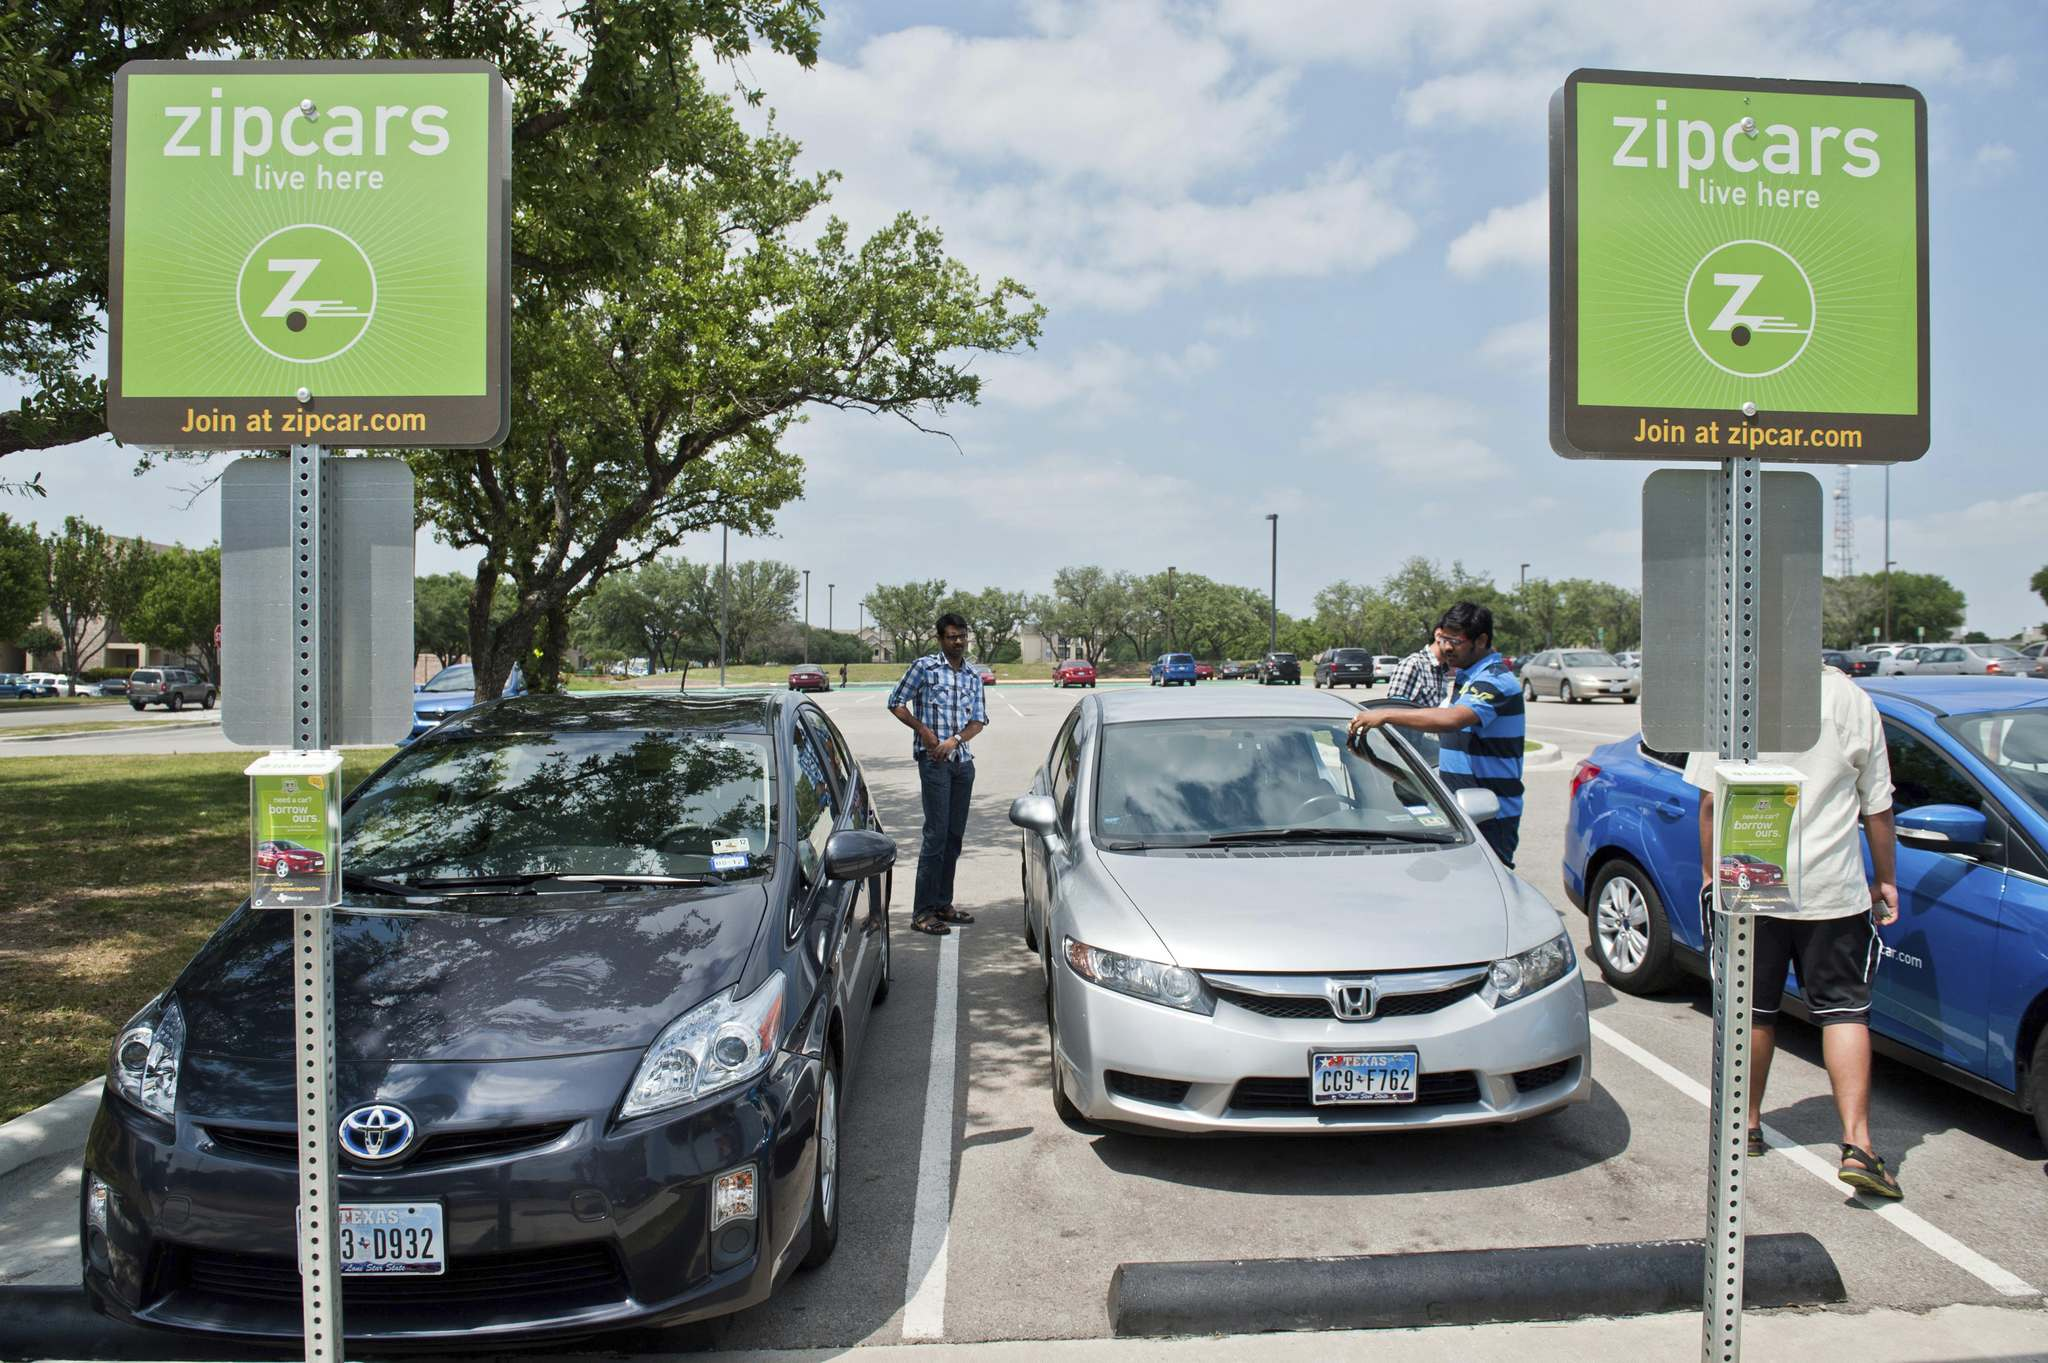 Steve Pfost / Dallas Morning NewsStudents trade out a Honda Civic zip car from the UT Dallas campus in Richardson, Texas.